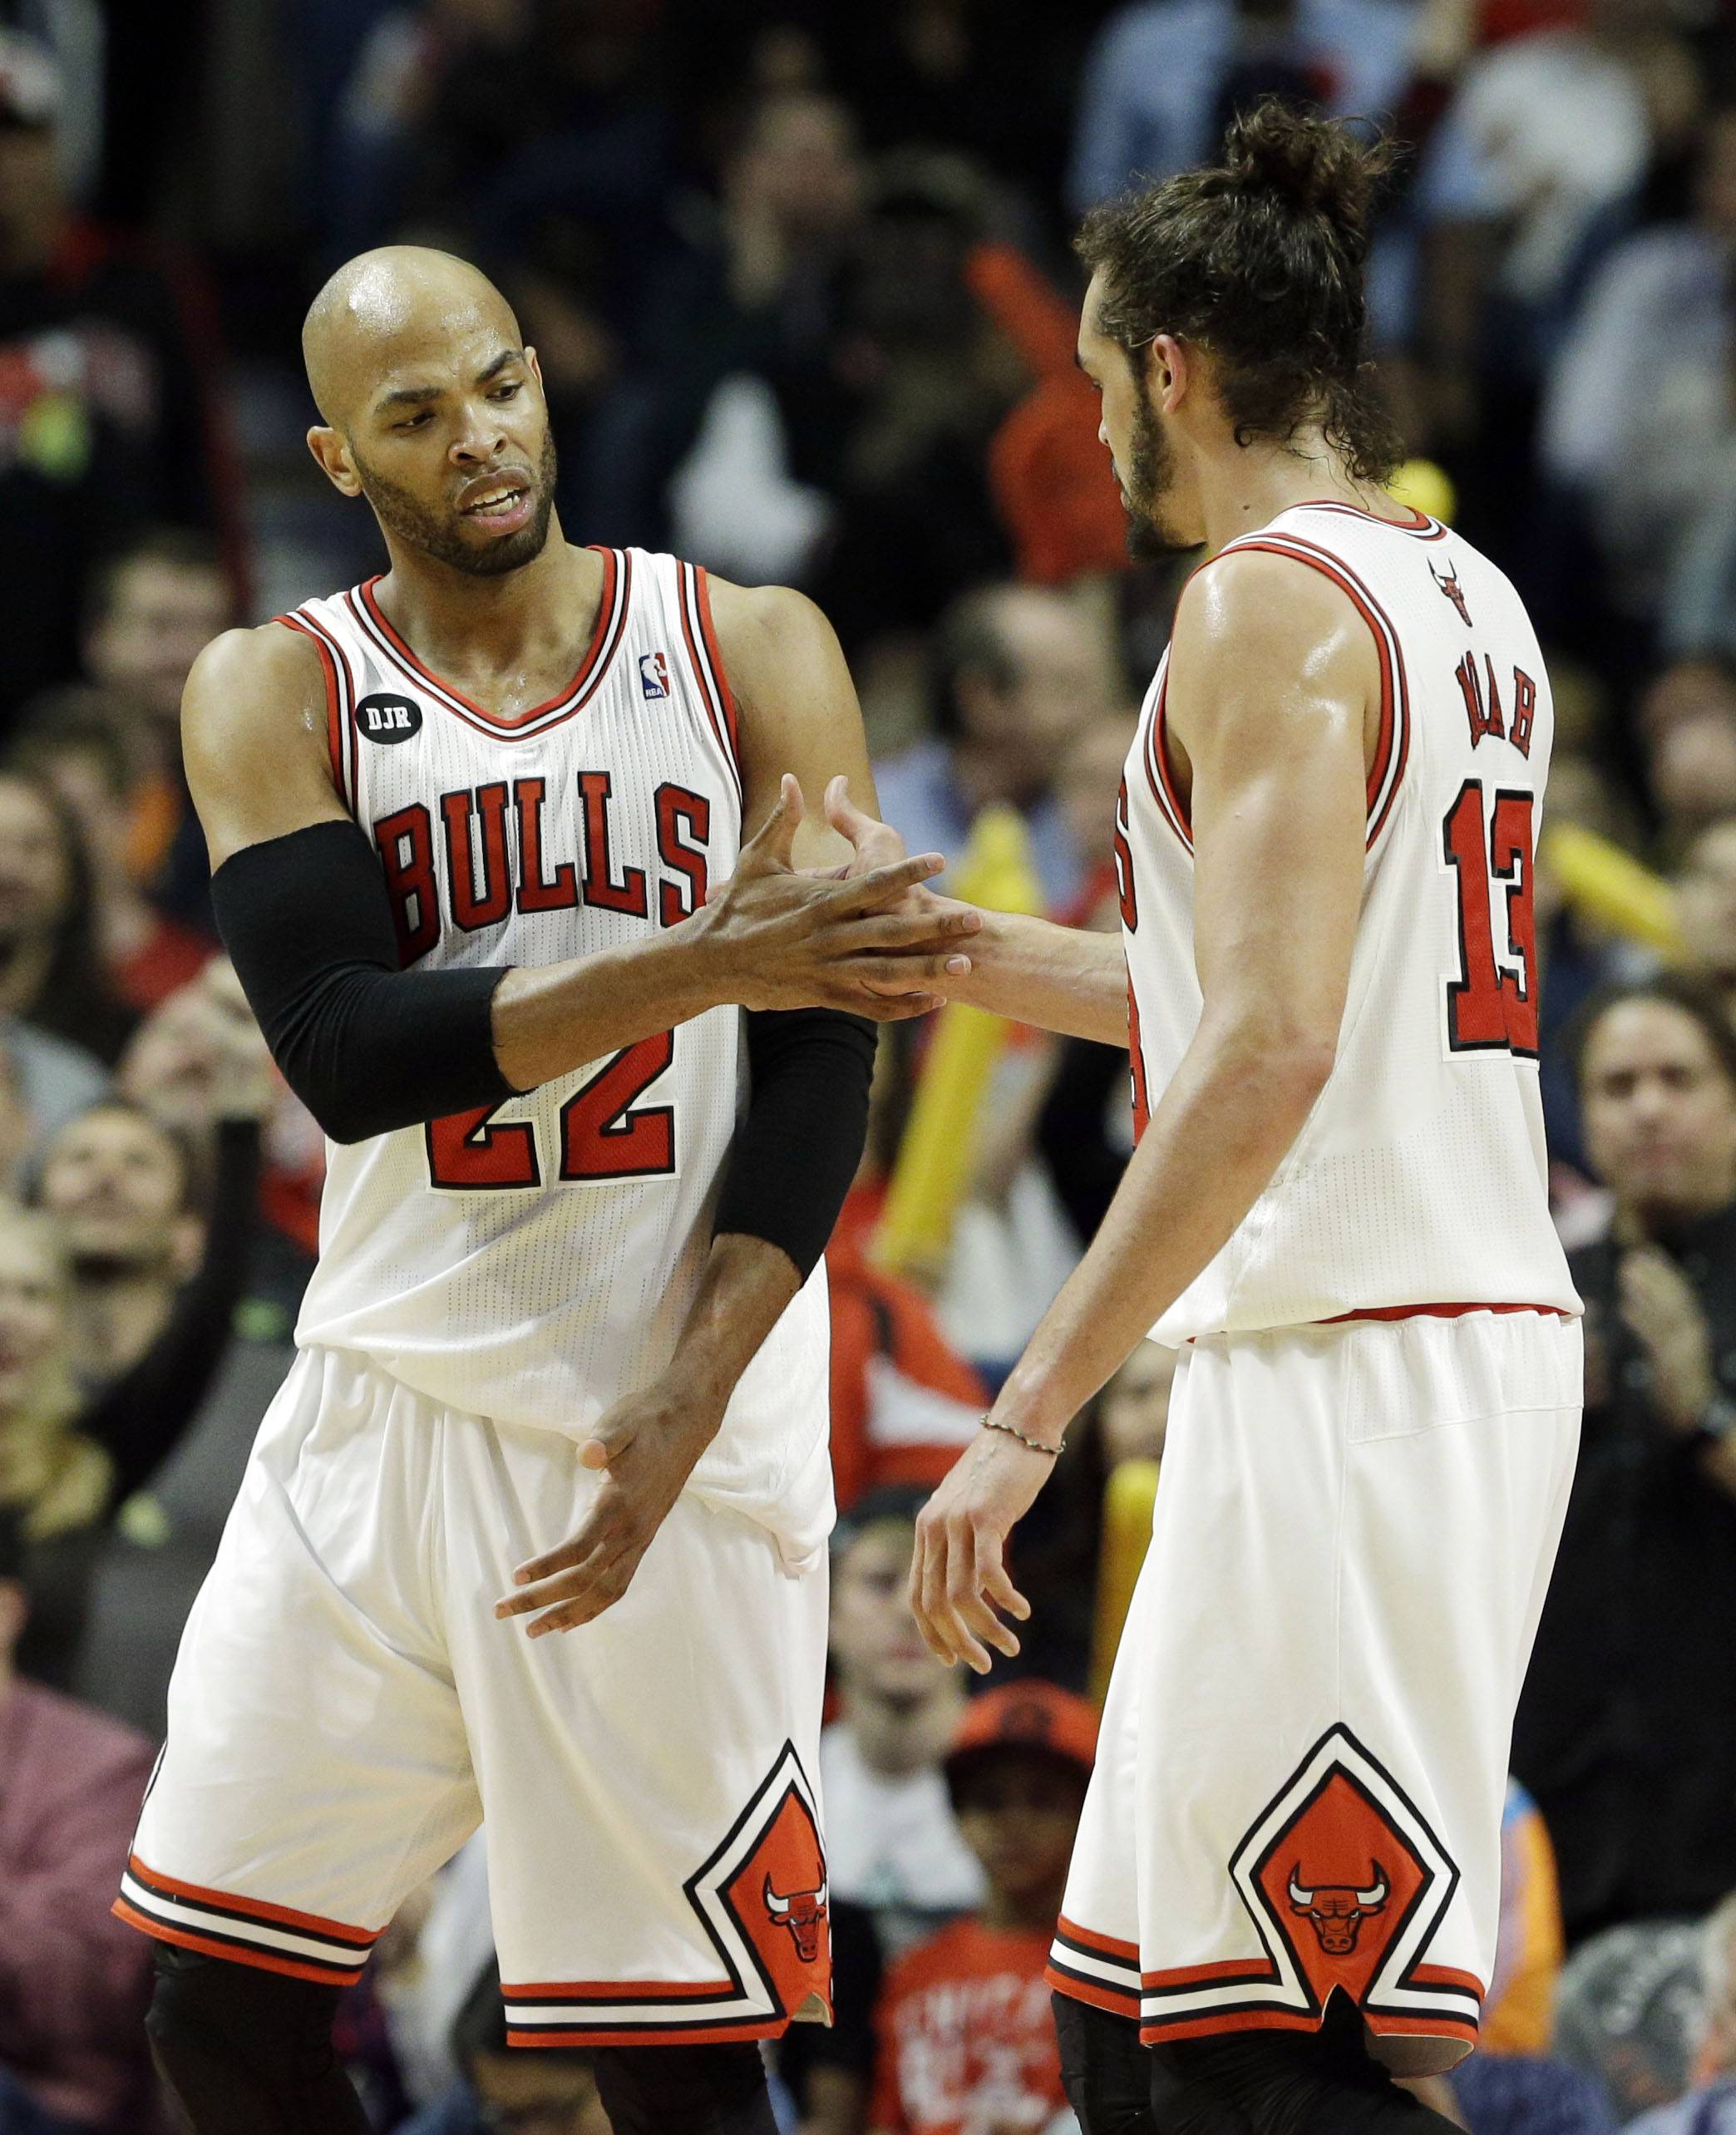 The Bulls' Taj Gibson, left, should capture the NBA's sixth man award and Joakim Noah defensive player of the year honors, according to Mike McGraw.